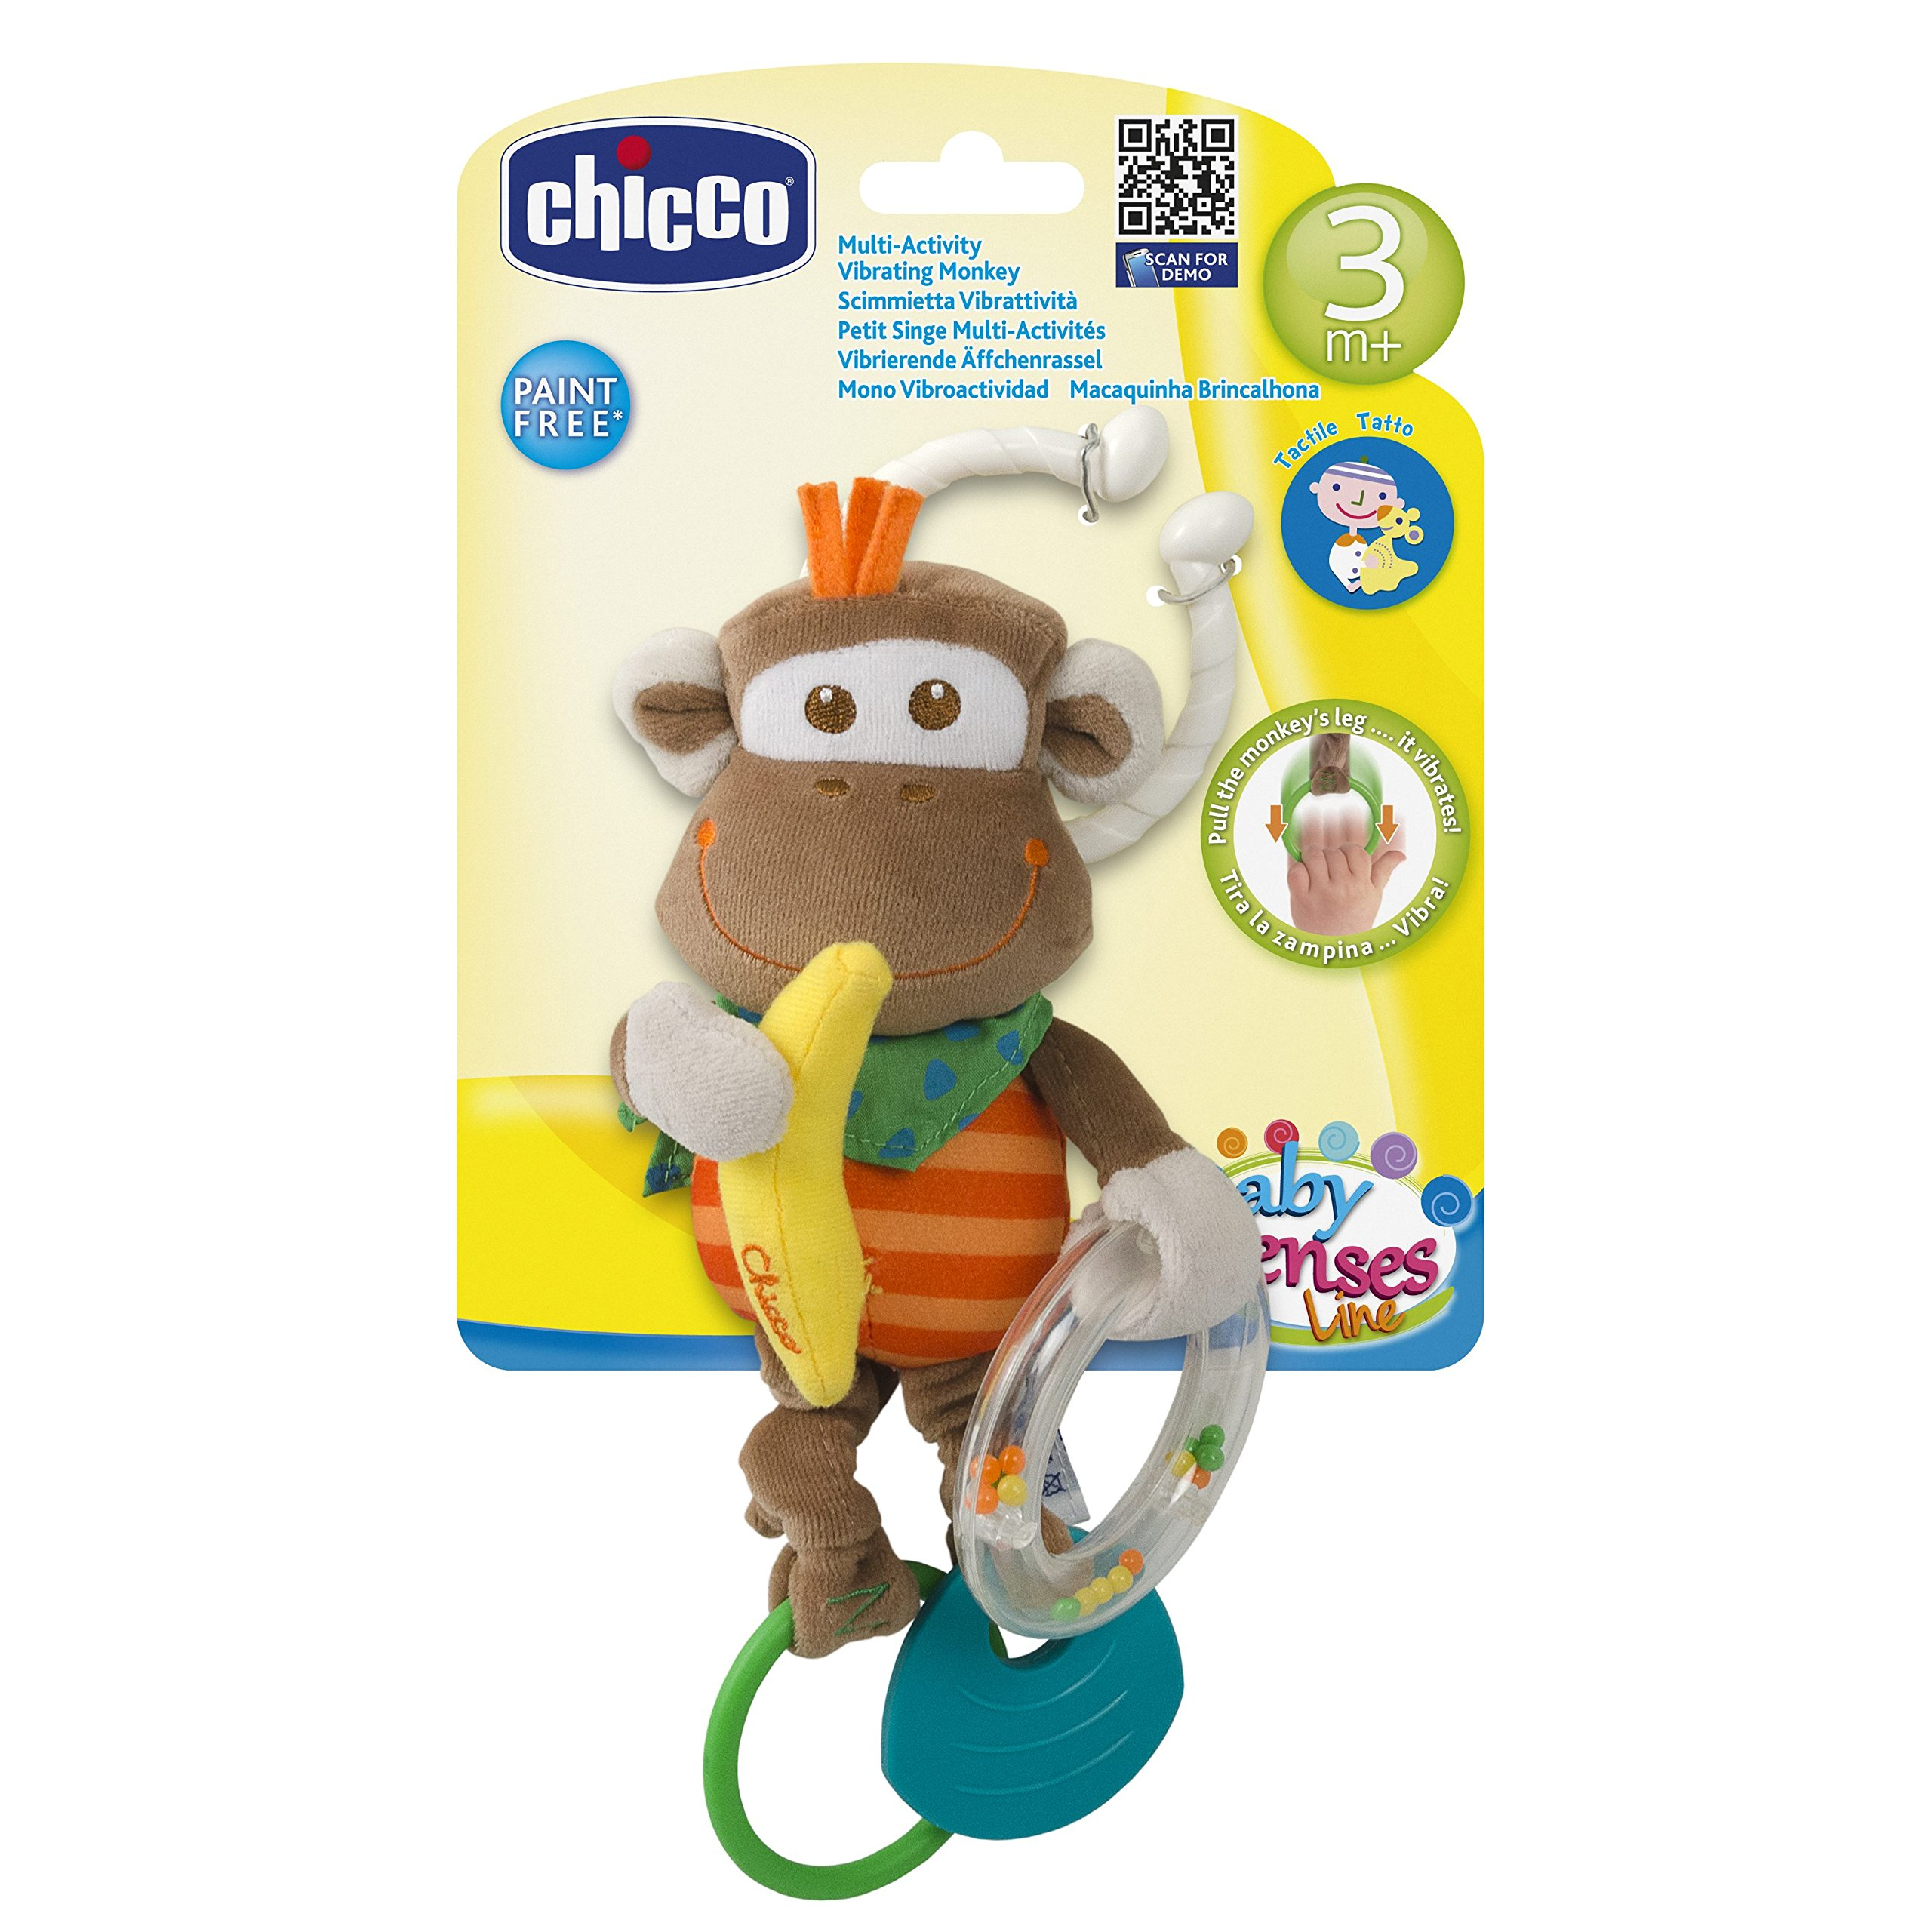 Chicco Multi Activity Vibrating Monkey